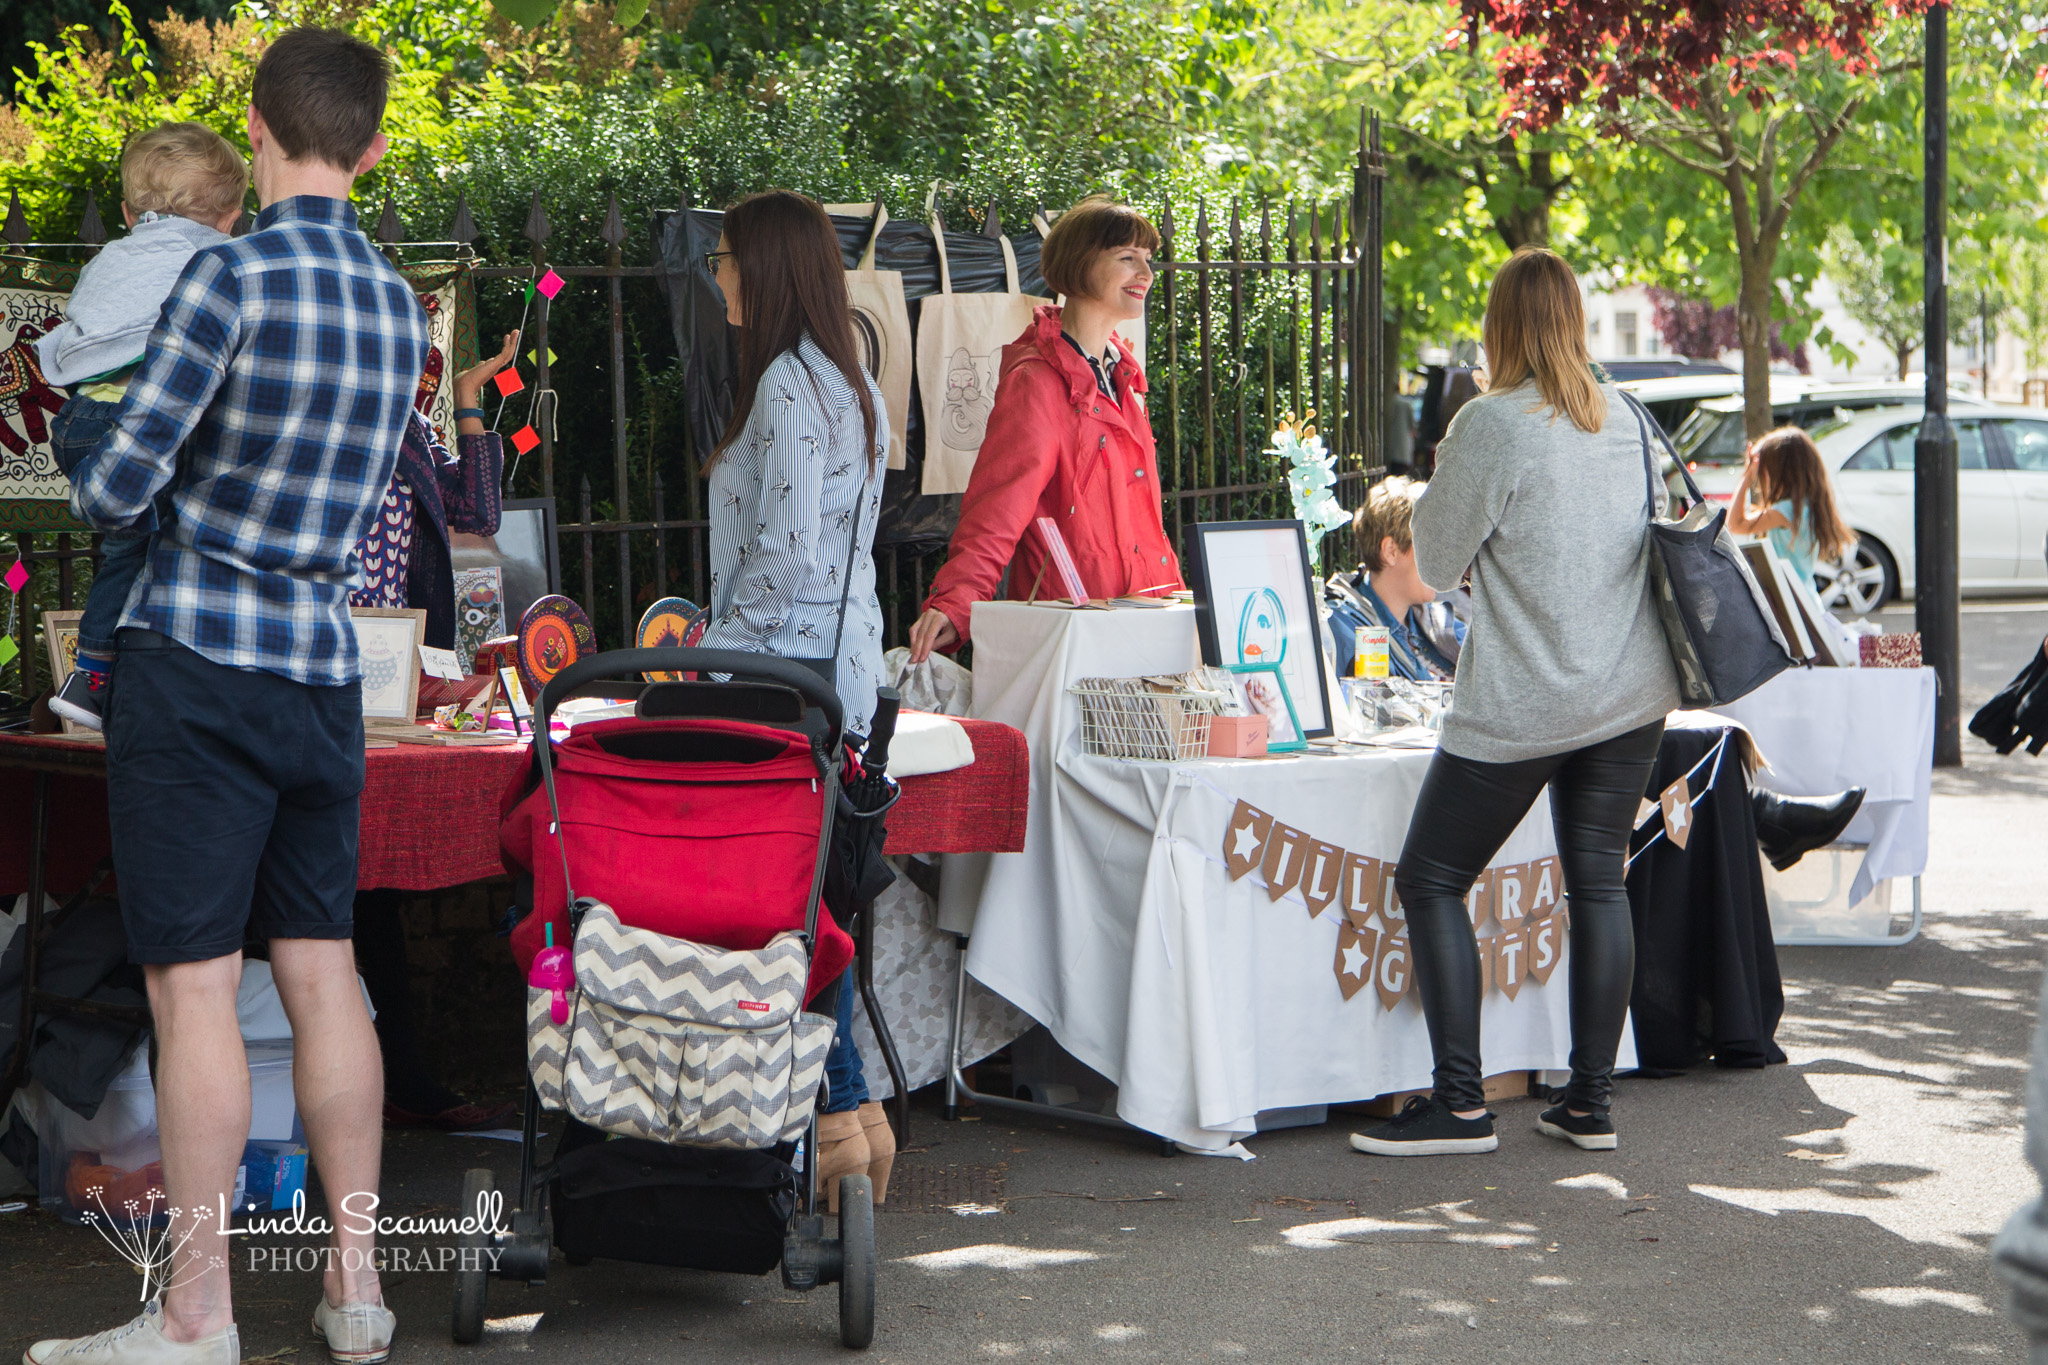 Artist stallholders outside the Jephson Gardens, Art in the Park 2017